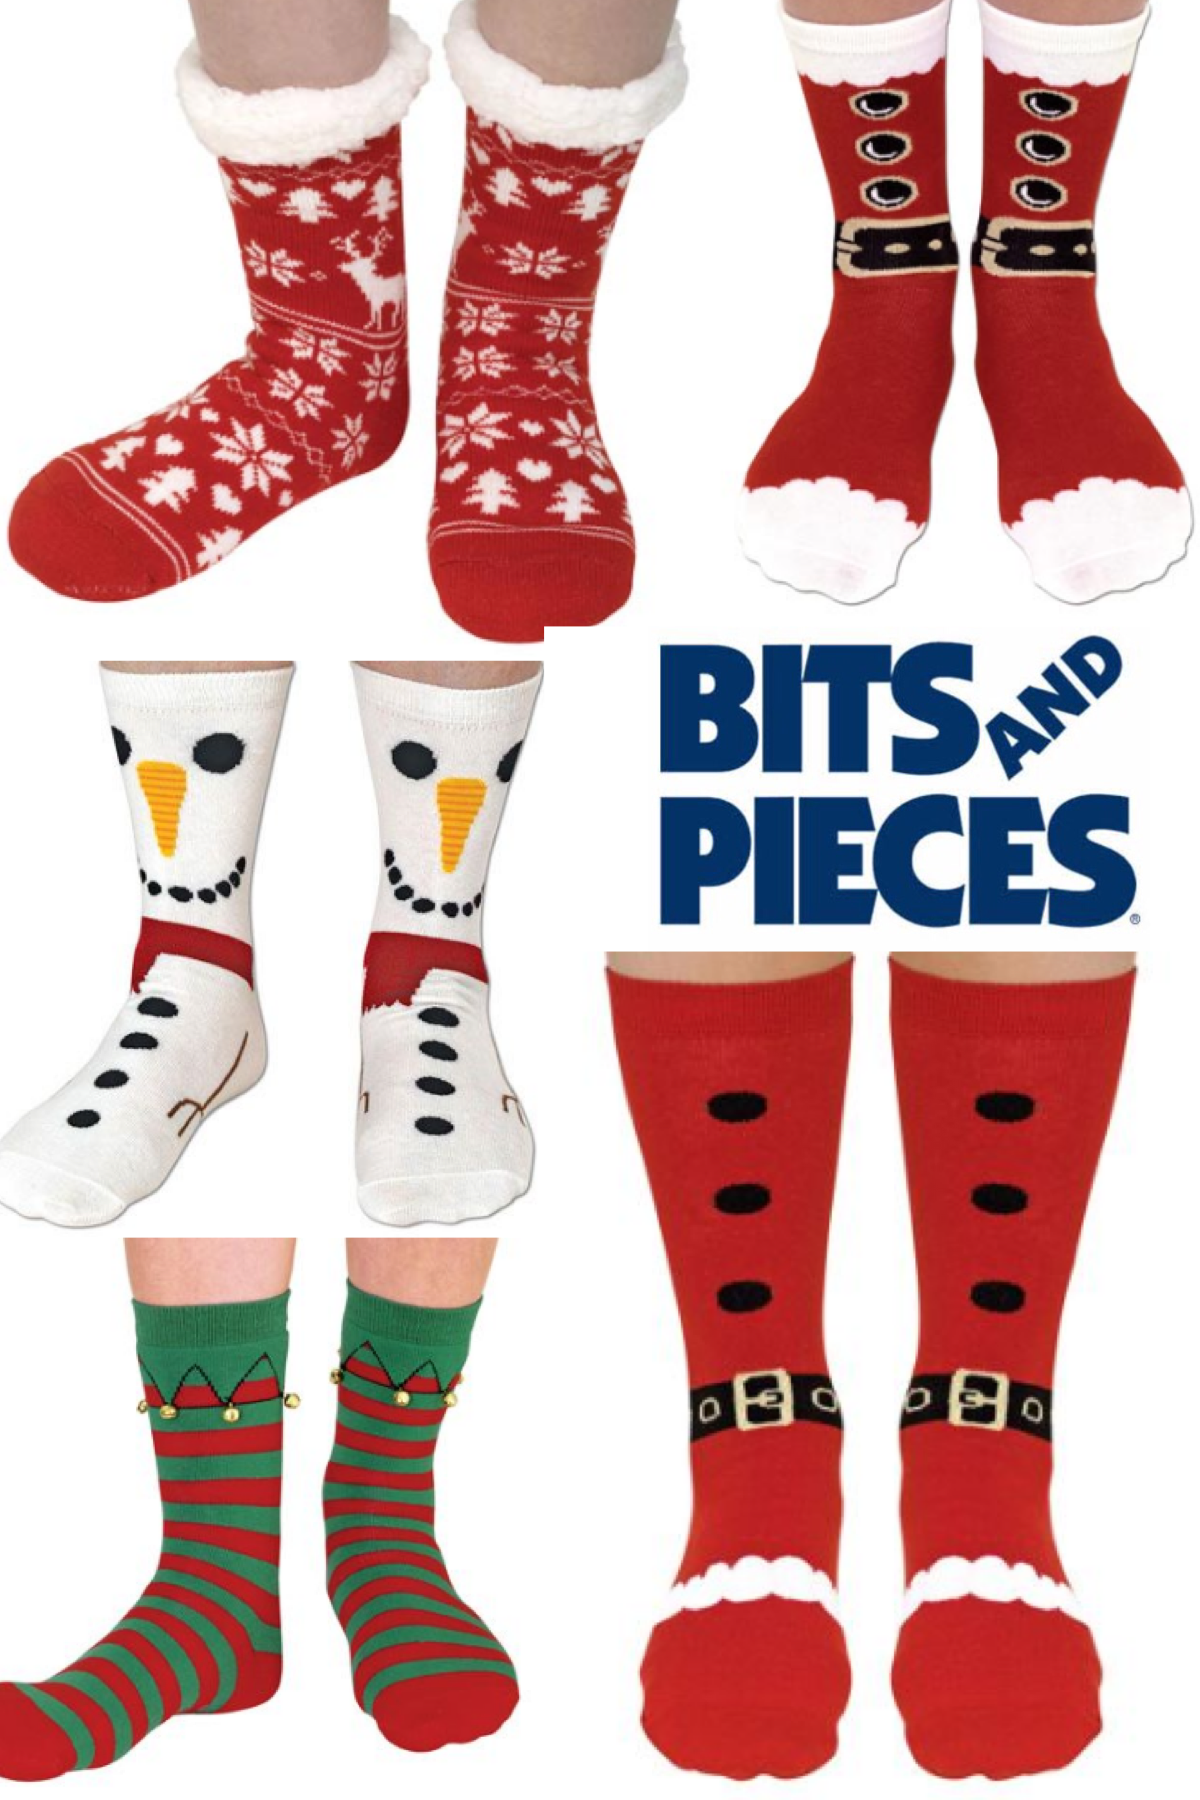 Bits and Pieces Holiday SILLY SOCKS! | Wardrobe: SOCK it to me ...